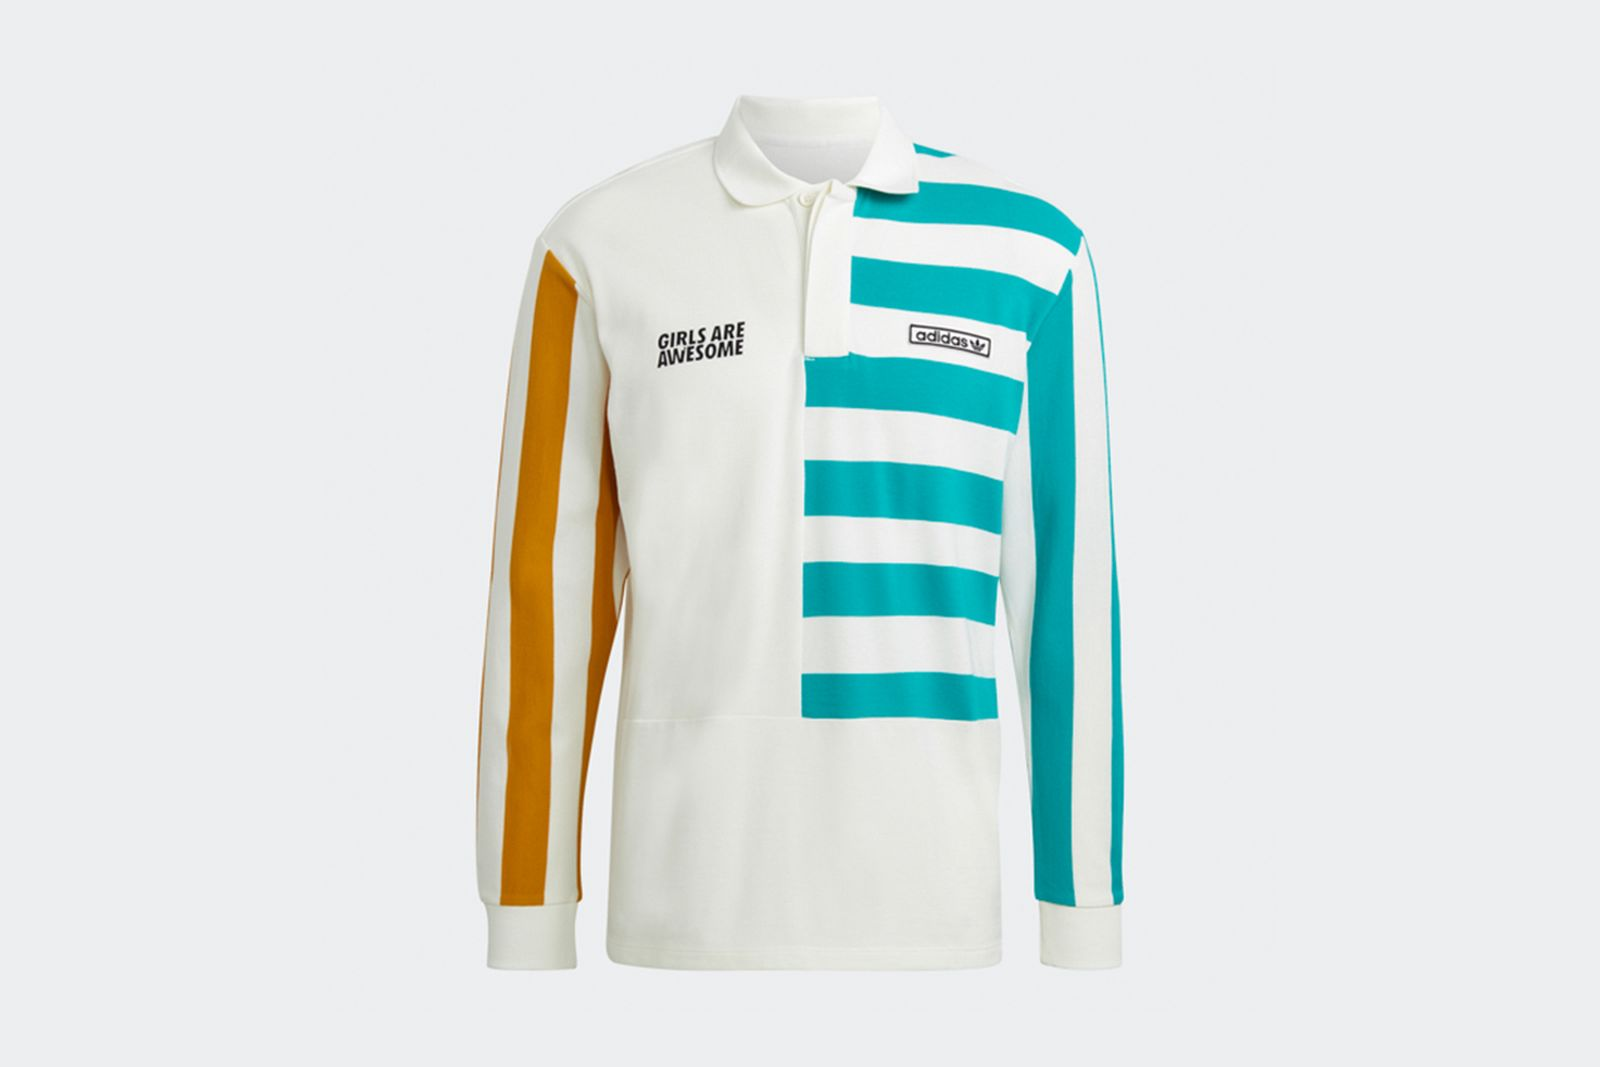 girls-are-awesome-adidas-originals-forum-release-date-price-prdct-07